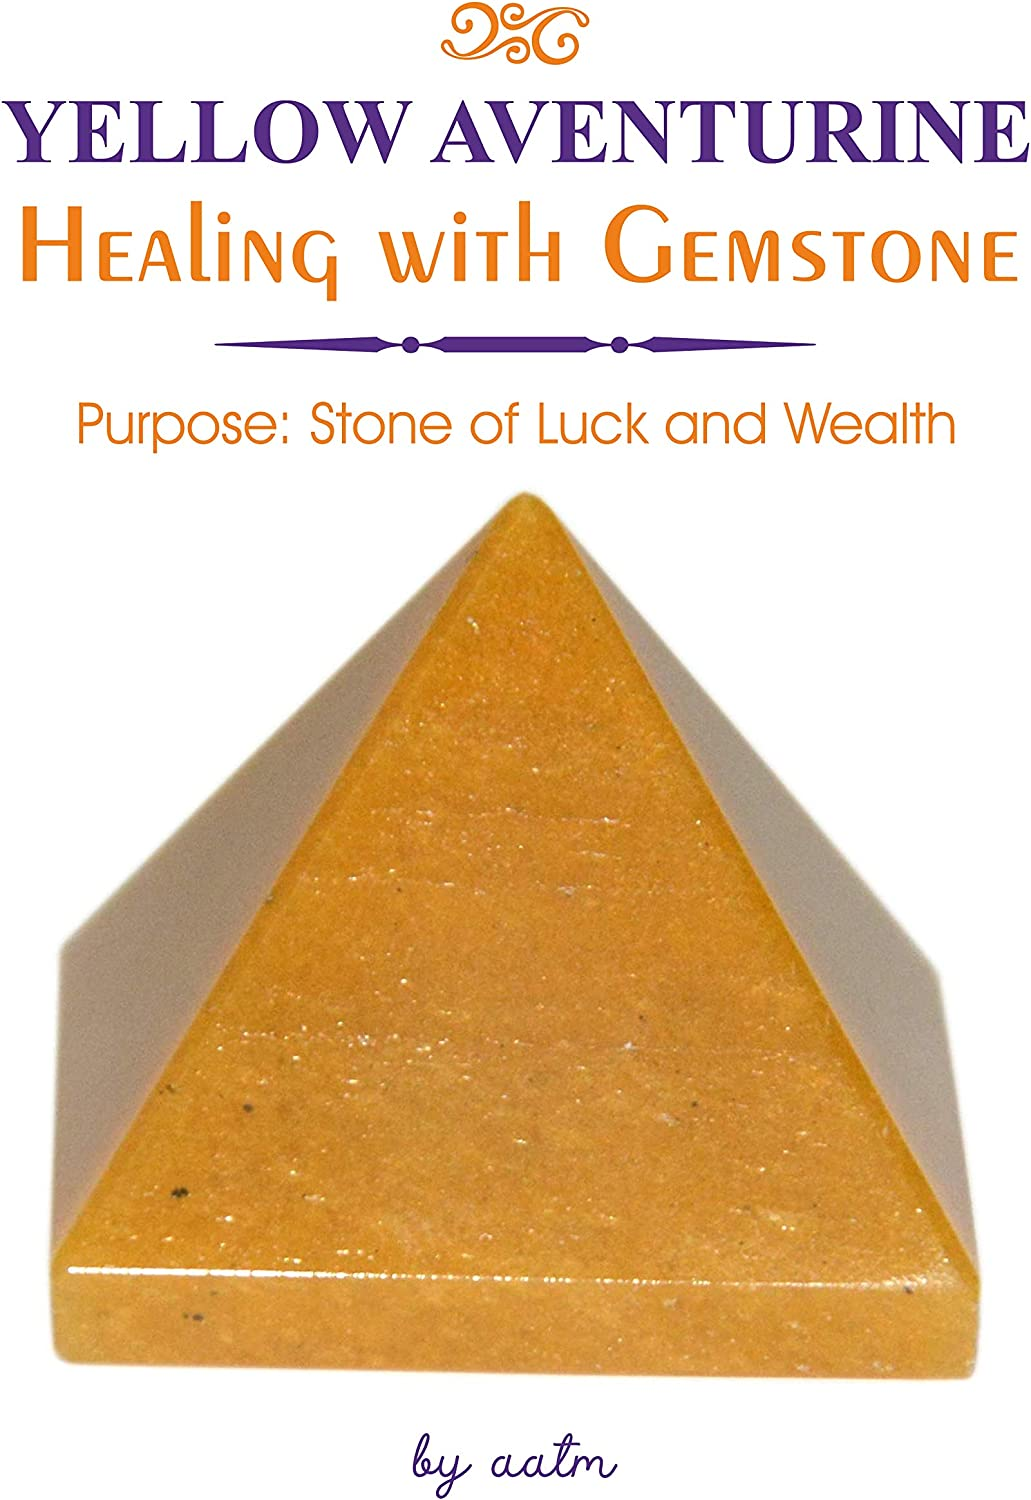 Aatm Energy Generator Gemstone Crystal Pyramid for EMF Protection Chakra Healing Meditation 2 and 2 Inches